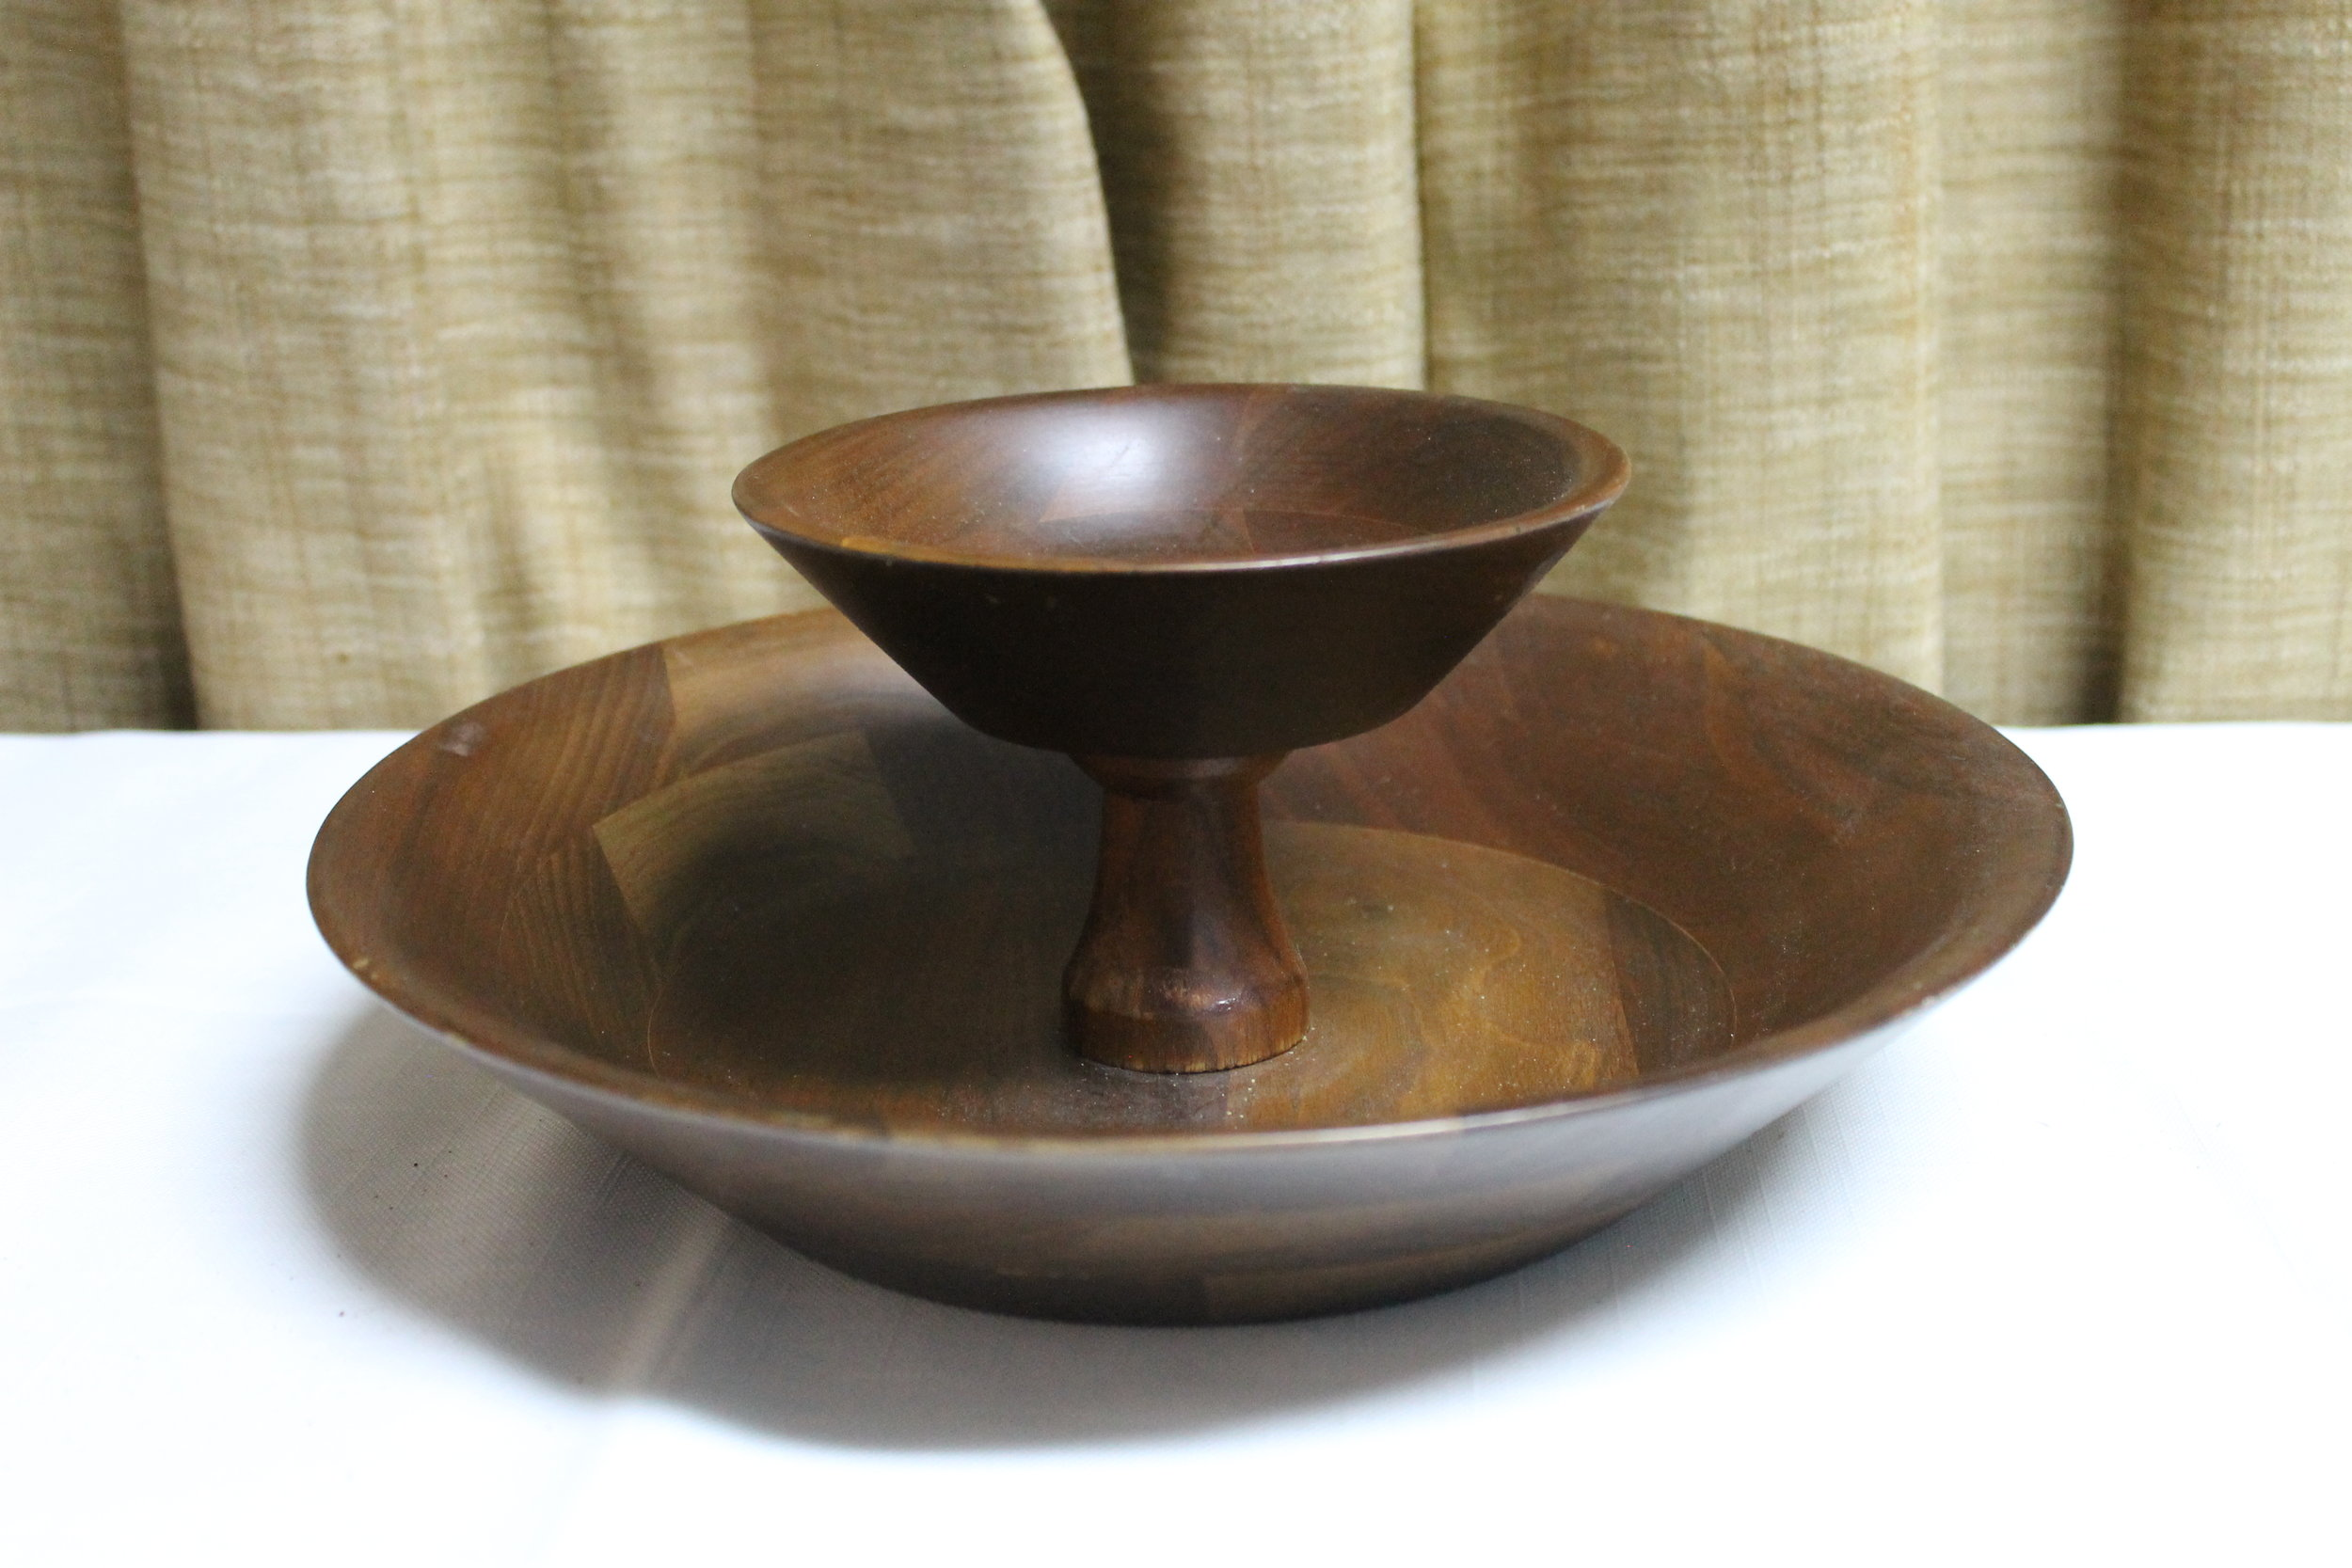 Two Tier Wooden Bowl